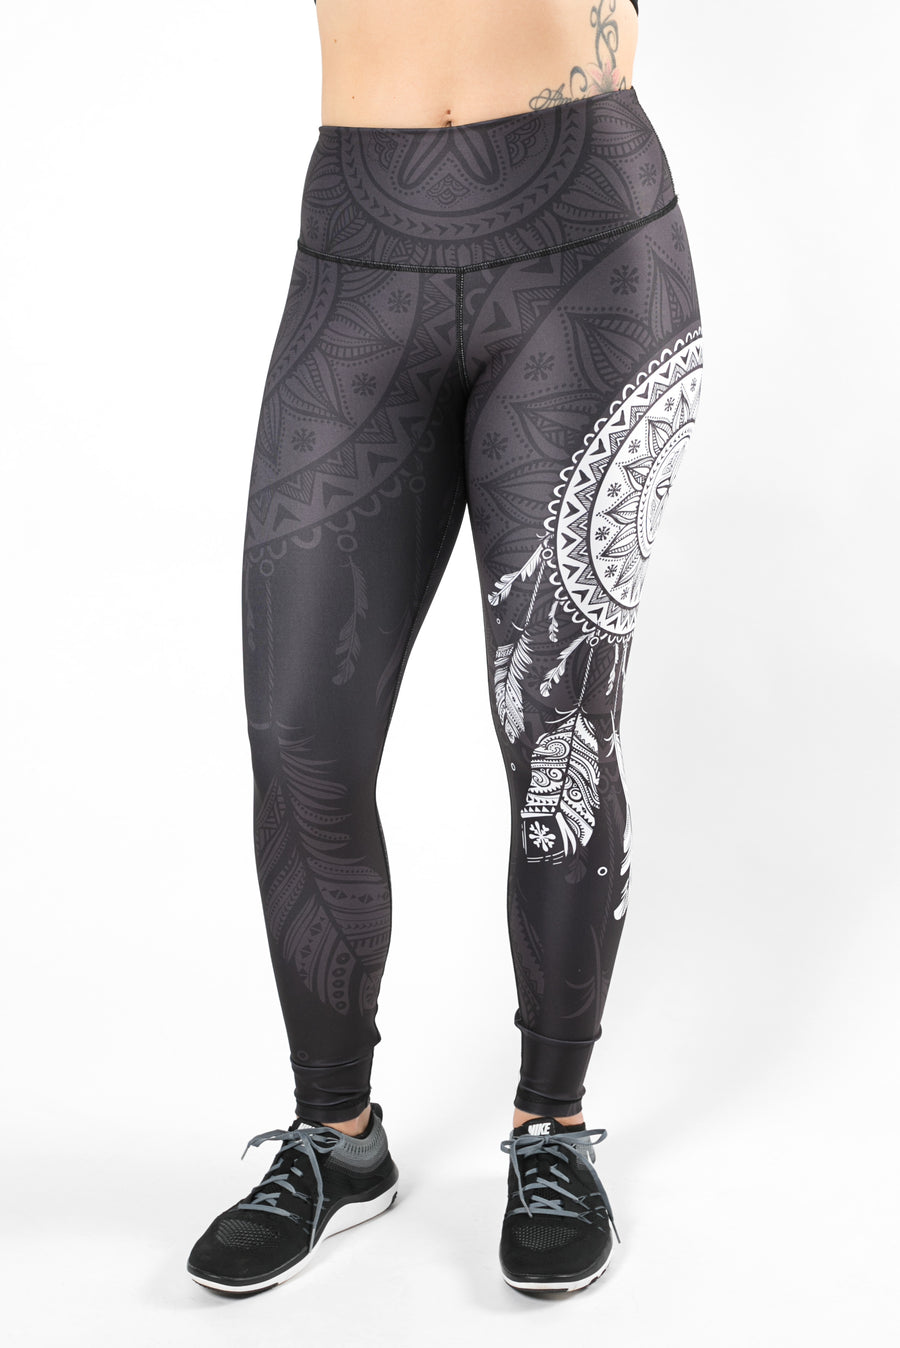 5be62dd0d0 Shop Nominou - Dreamcatcher Legging | Canada & US – Sweat Society